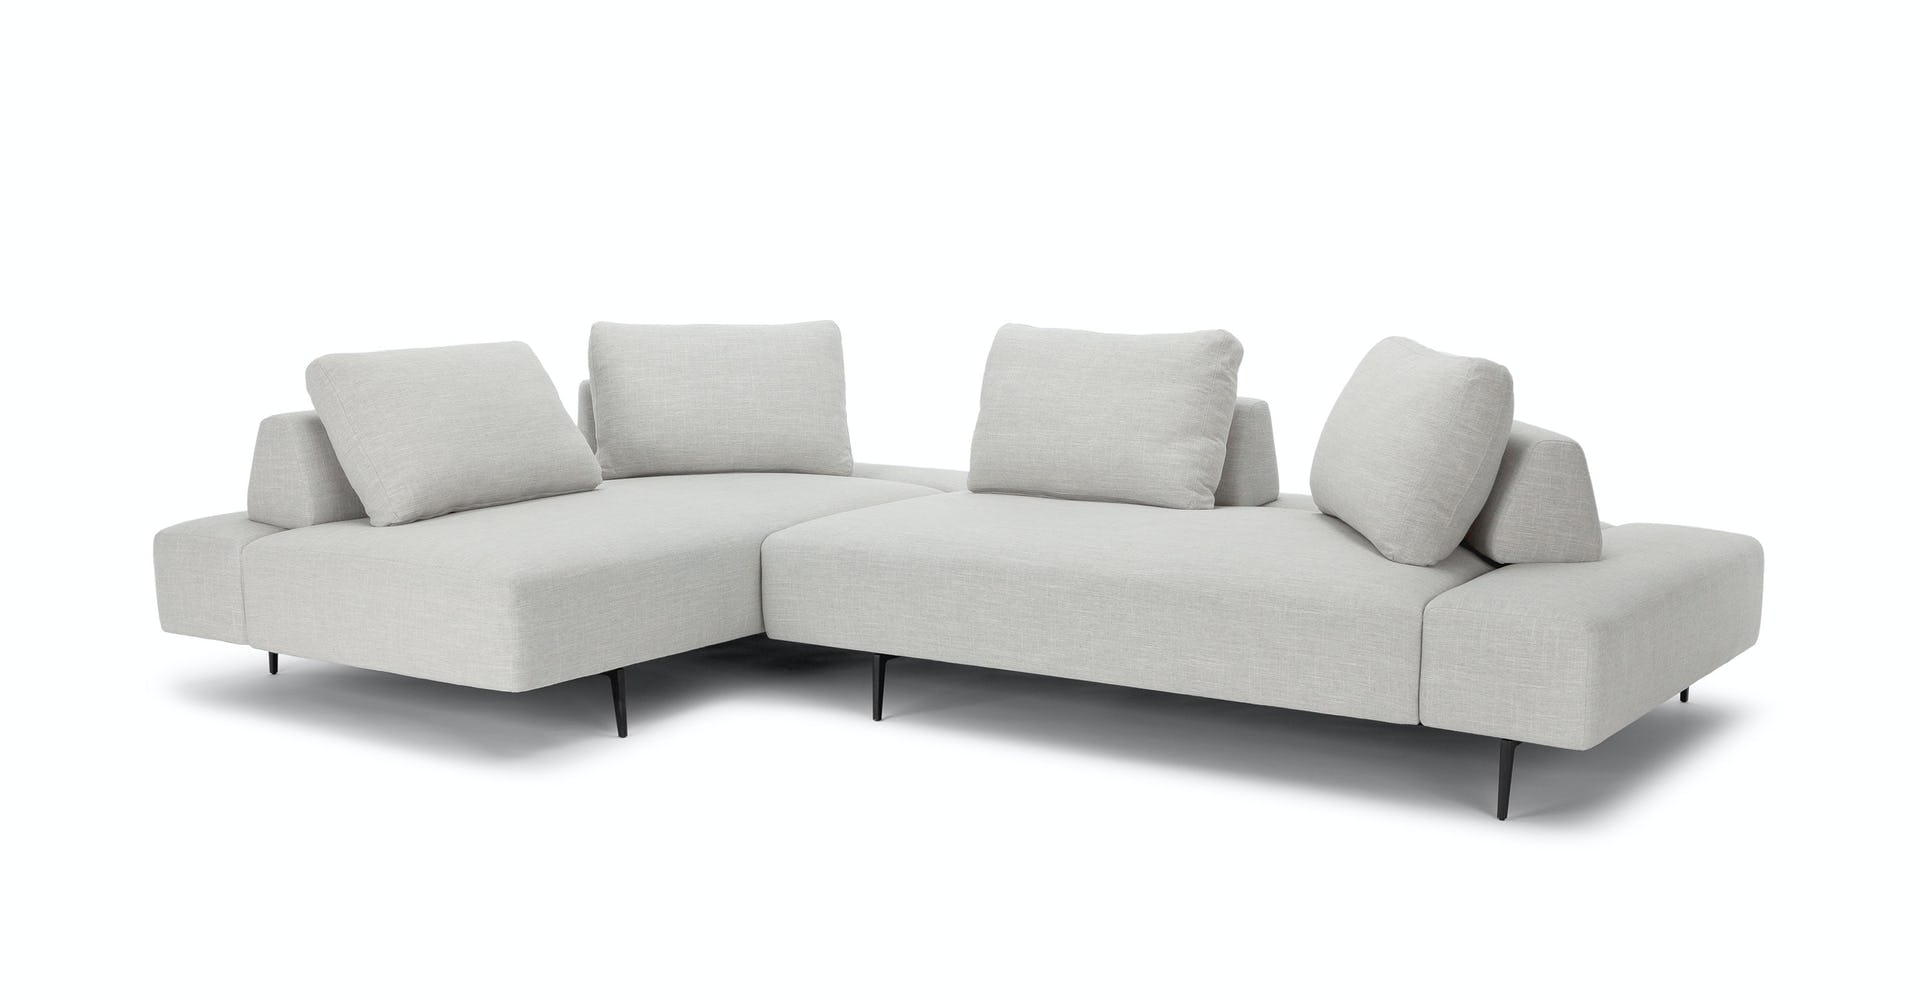 Wondrous Divan Mist Gray Sectional Squirreltailoven Fun Painted Chair Ideas Images Squirreltailovenorg